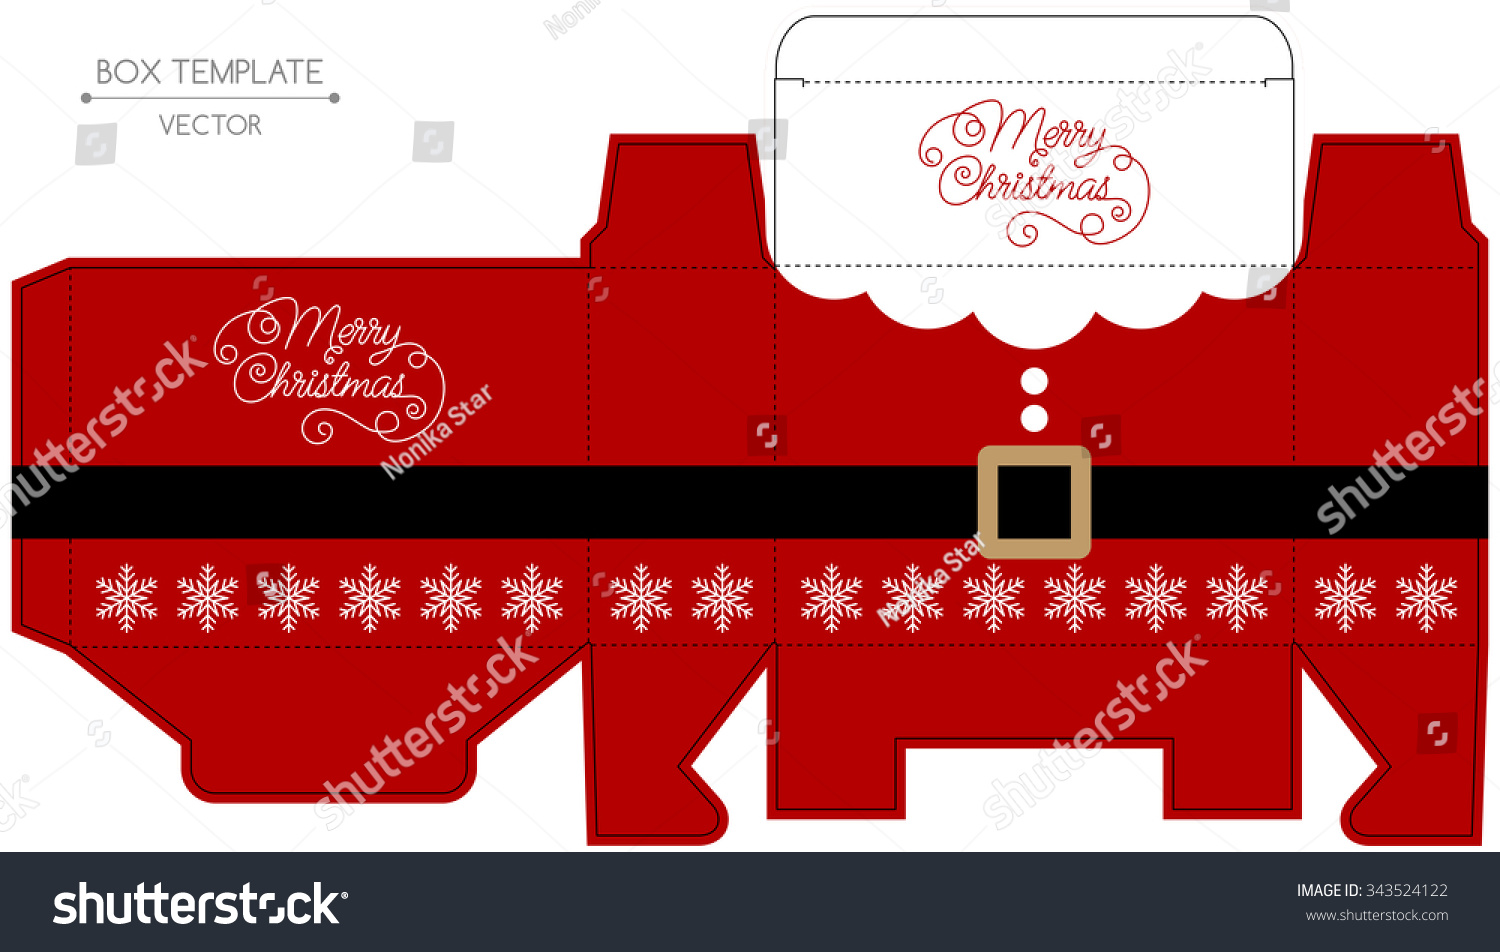 Christmas Gift Box Design Die Cut Stock Vector Royalty Free 343524122